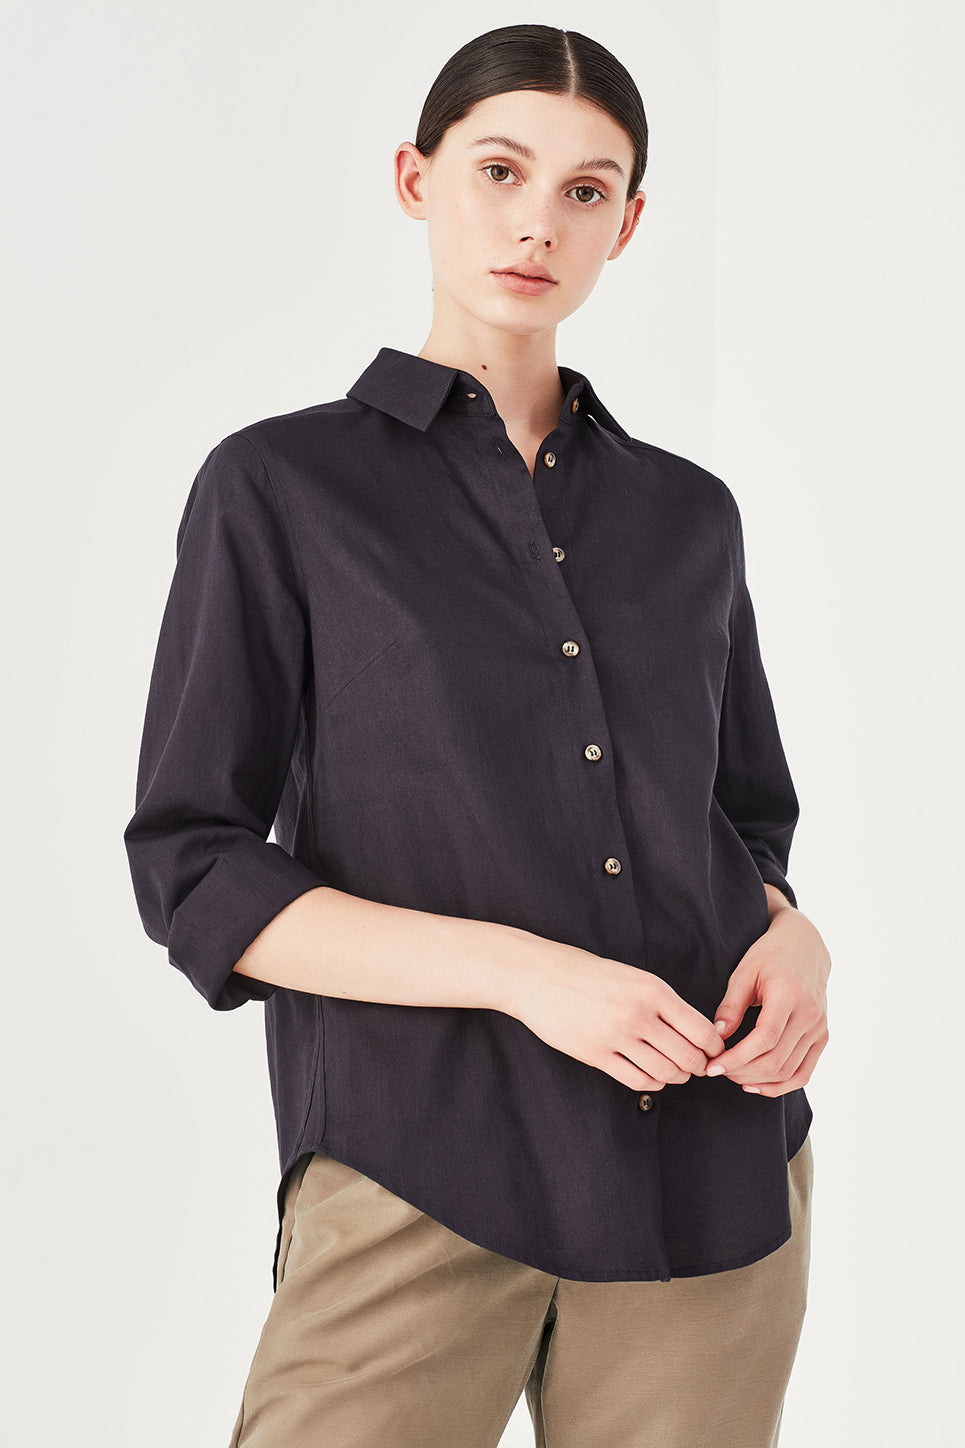 The Turret Shirt in Navy